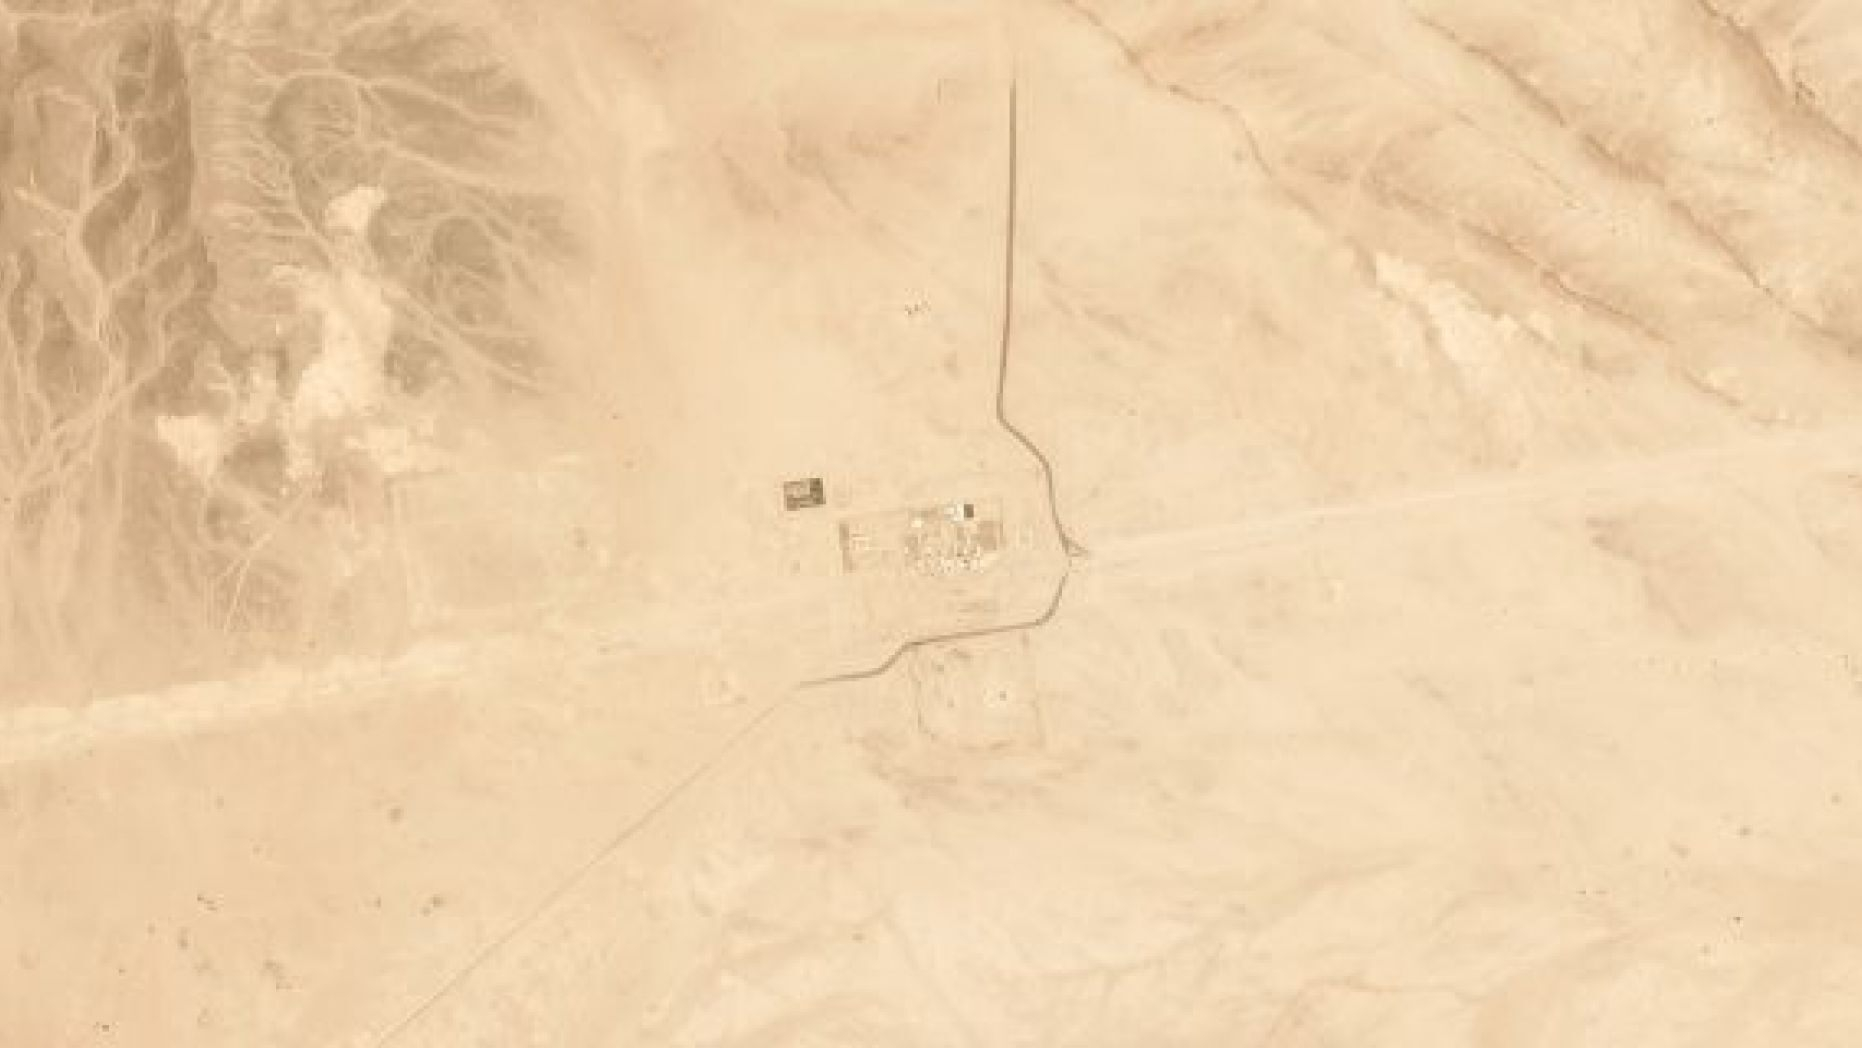 Satellite image shows Saudi pump station after drone attack